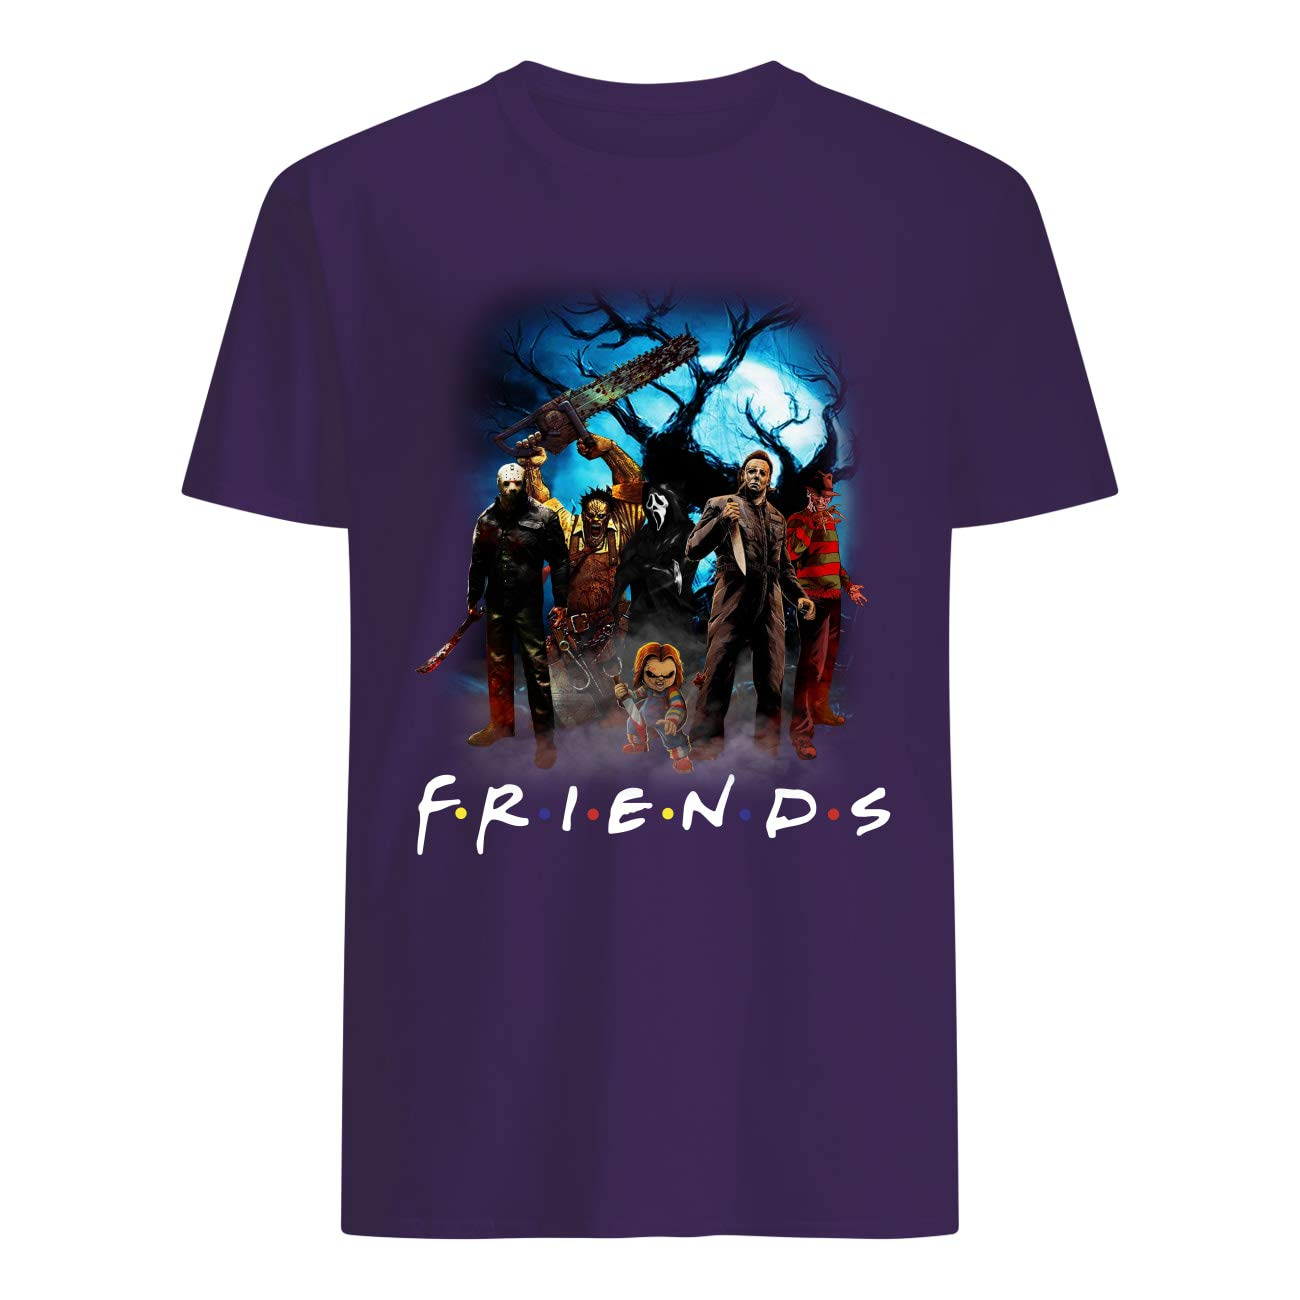 Cute Hello Darkness My Old Friend Halloween T Shirt For Horror Movies Fans Gift